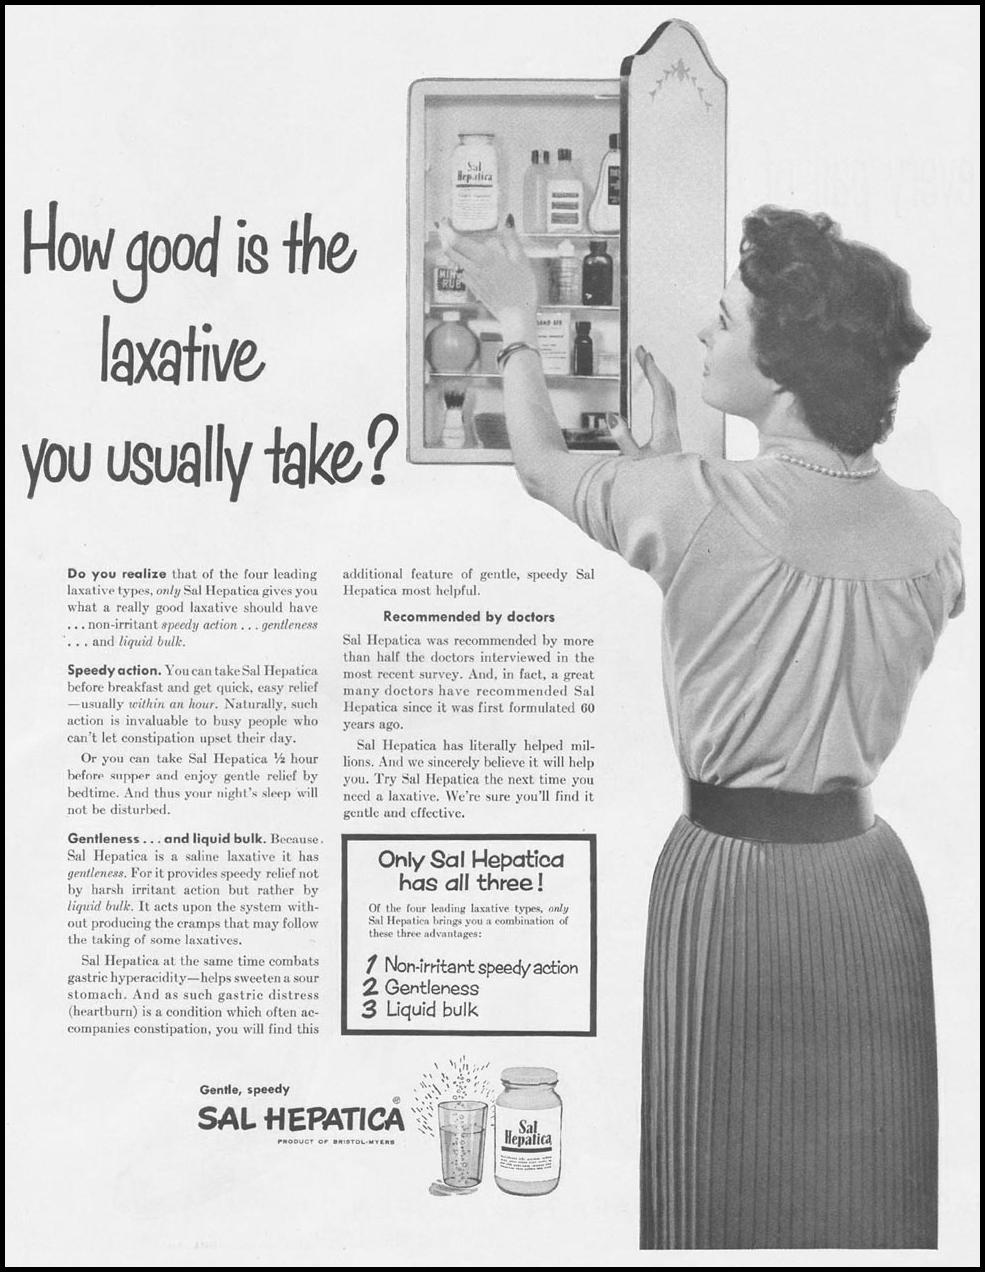 SAL HEPATICA LAXATIVE LADIES' HOME JOURNAL 03/01/1954 p. 38